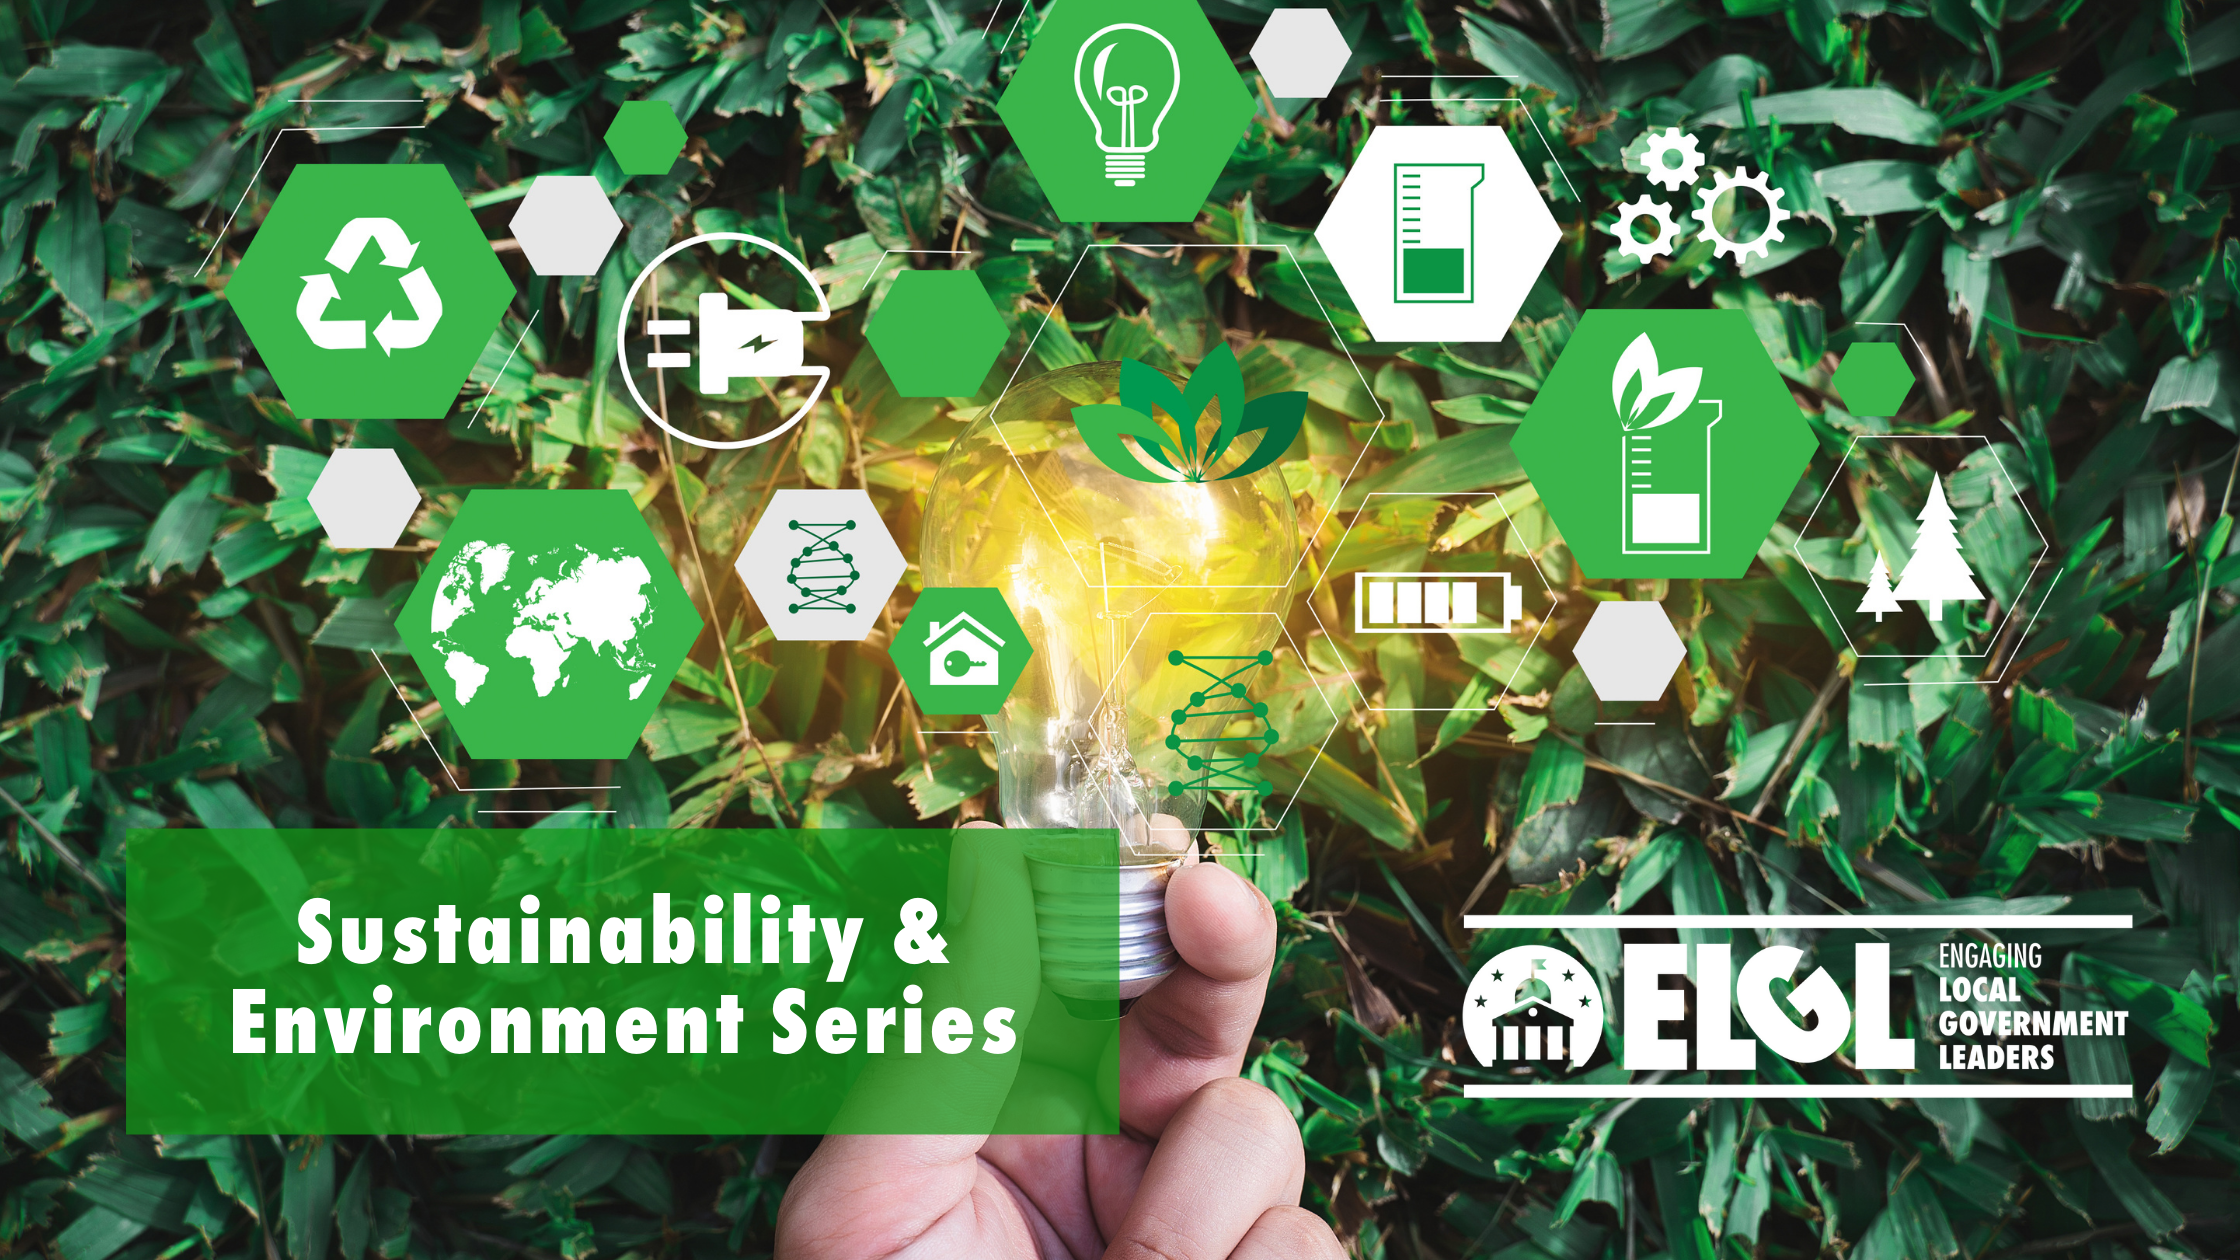 Image with hand holding up various environmentally related logos